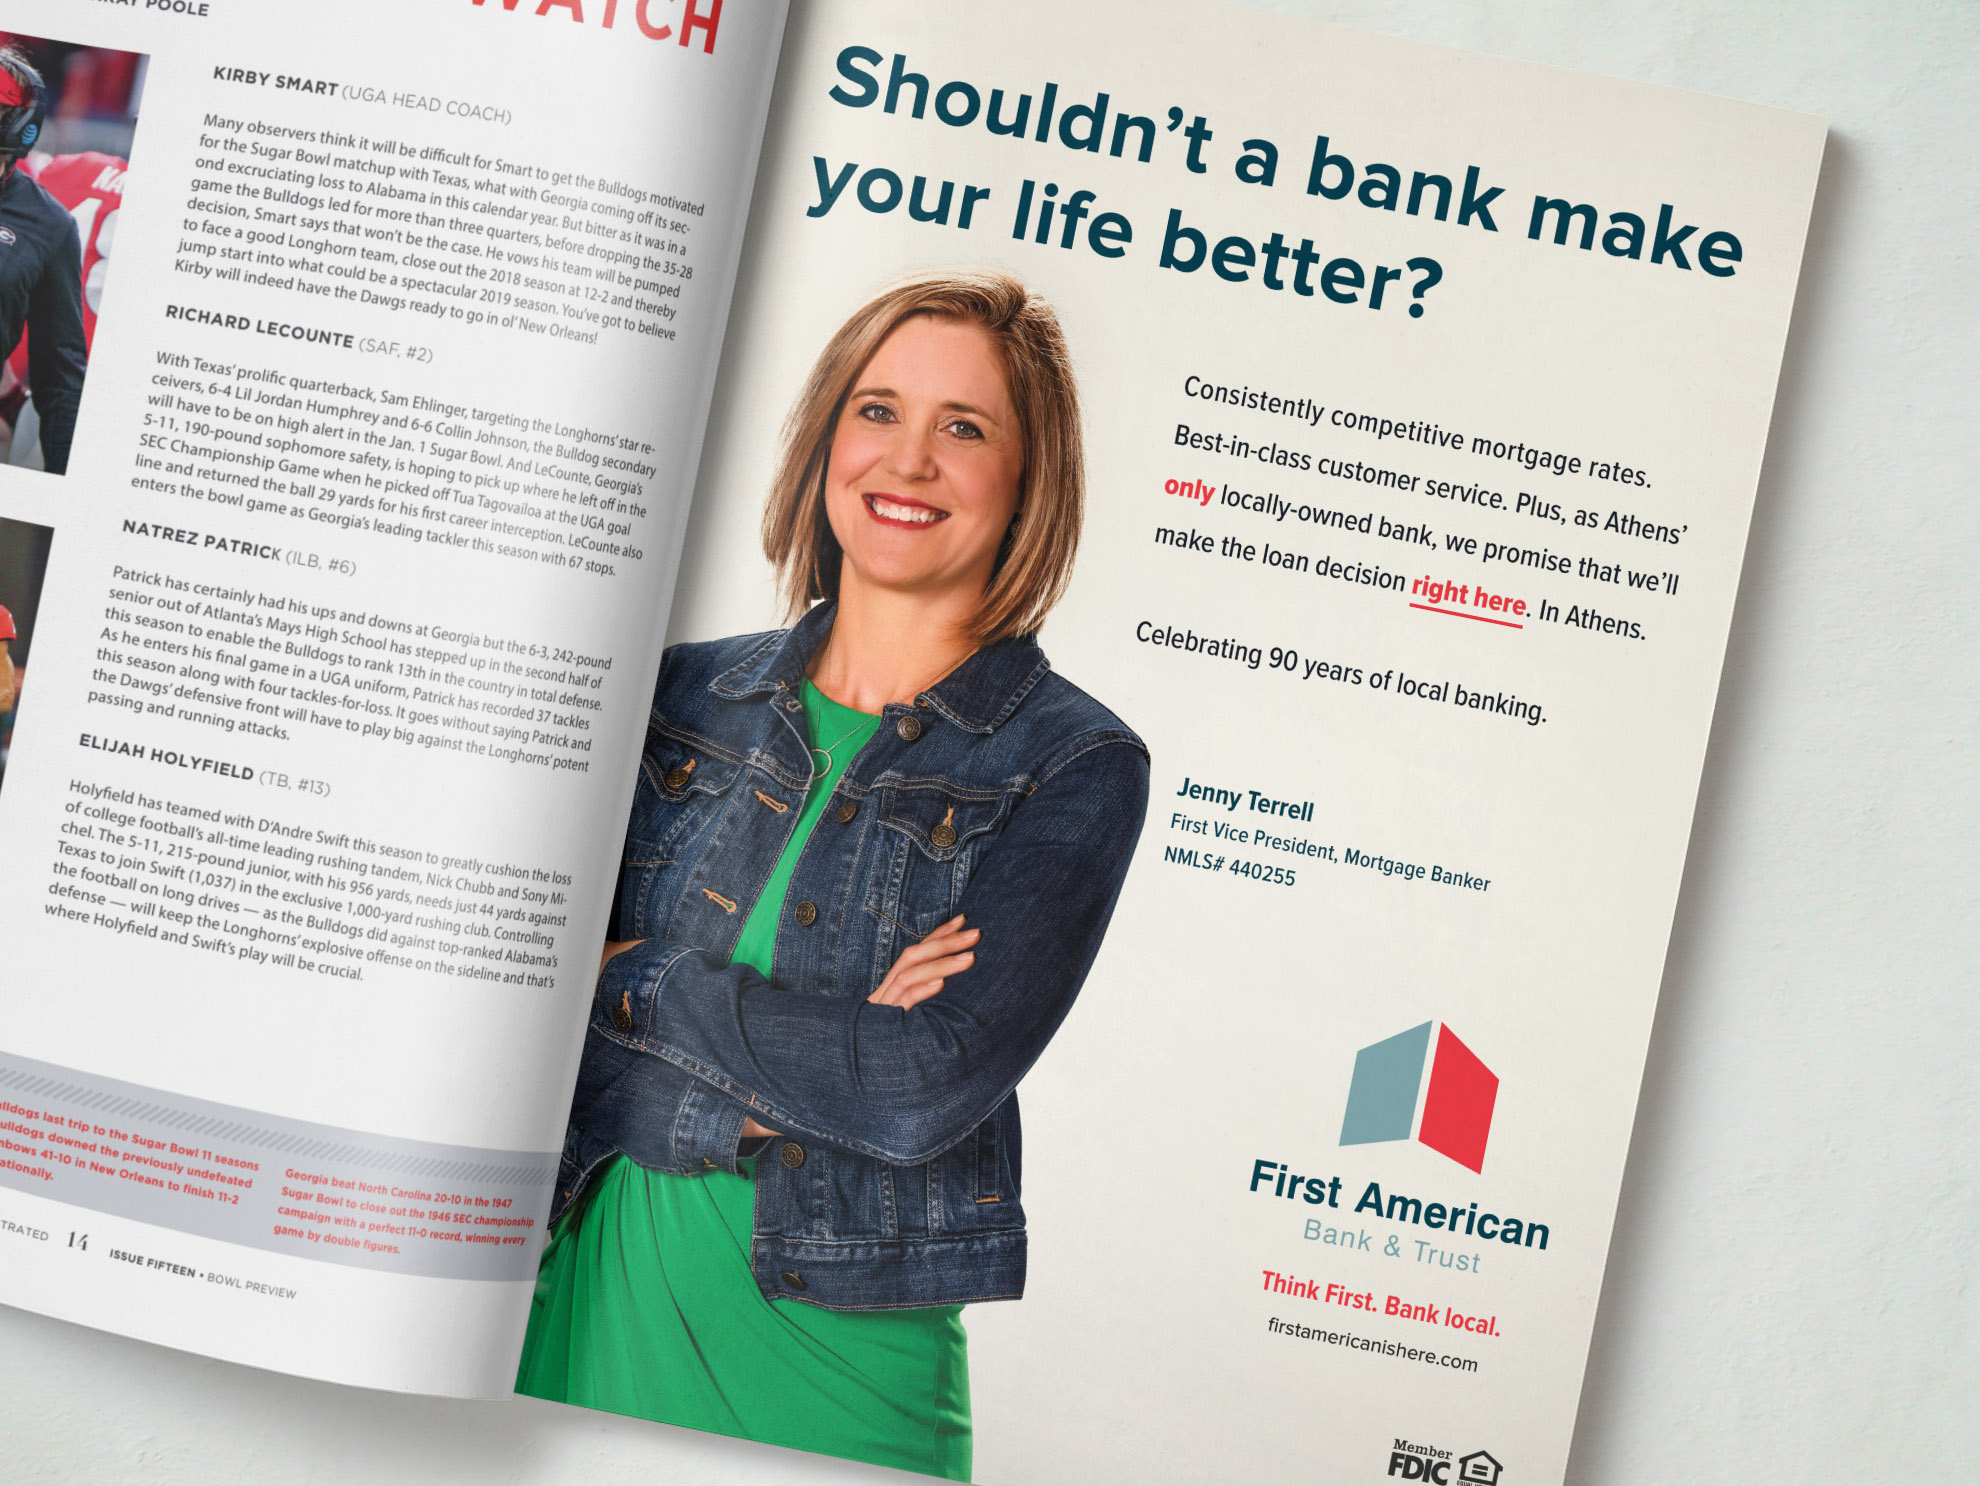 The Adsmith First American Bank & Trust | The Adsmith